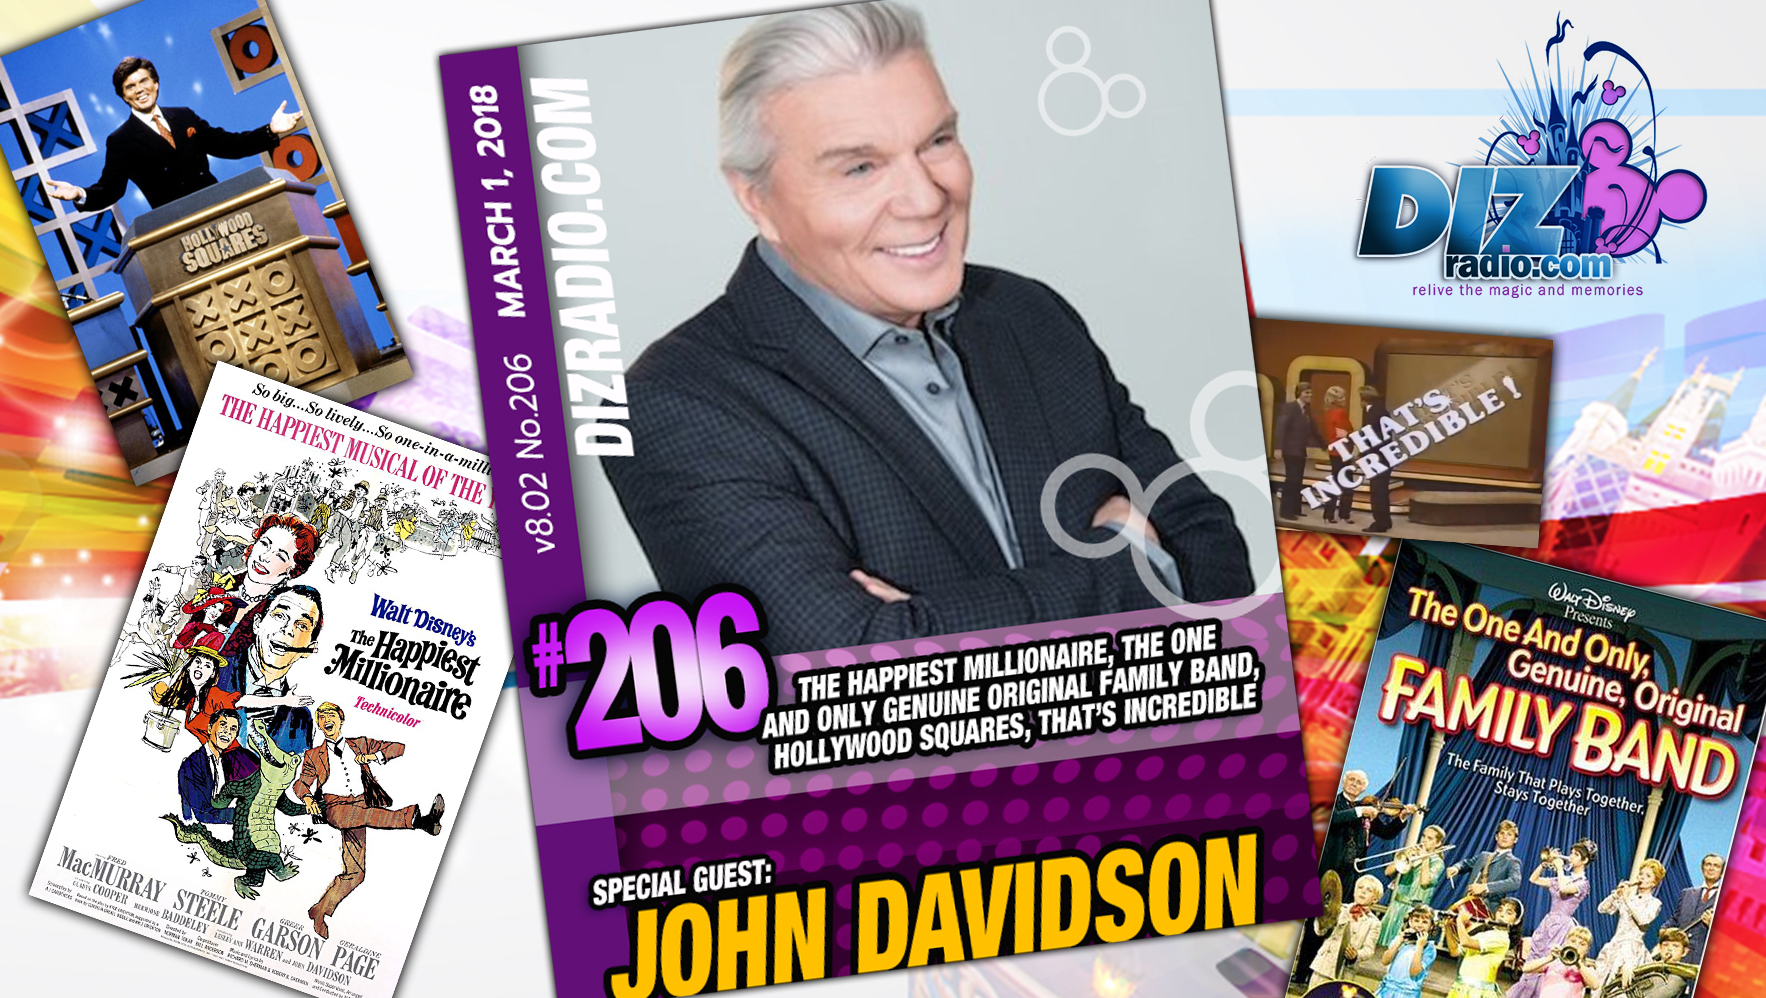 DisneyBlu's DizRadio Disney on Demand Podcast Show #206 w/ Special Guest JOHN DAVIDSON (The Happiest Millionaire, The One and Only Genuine Original Family Band, Hollywood Squares, That's Incredible, Finding Neverland)